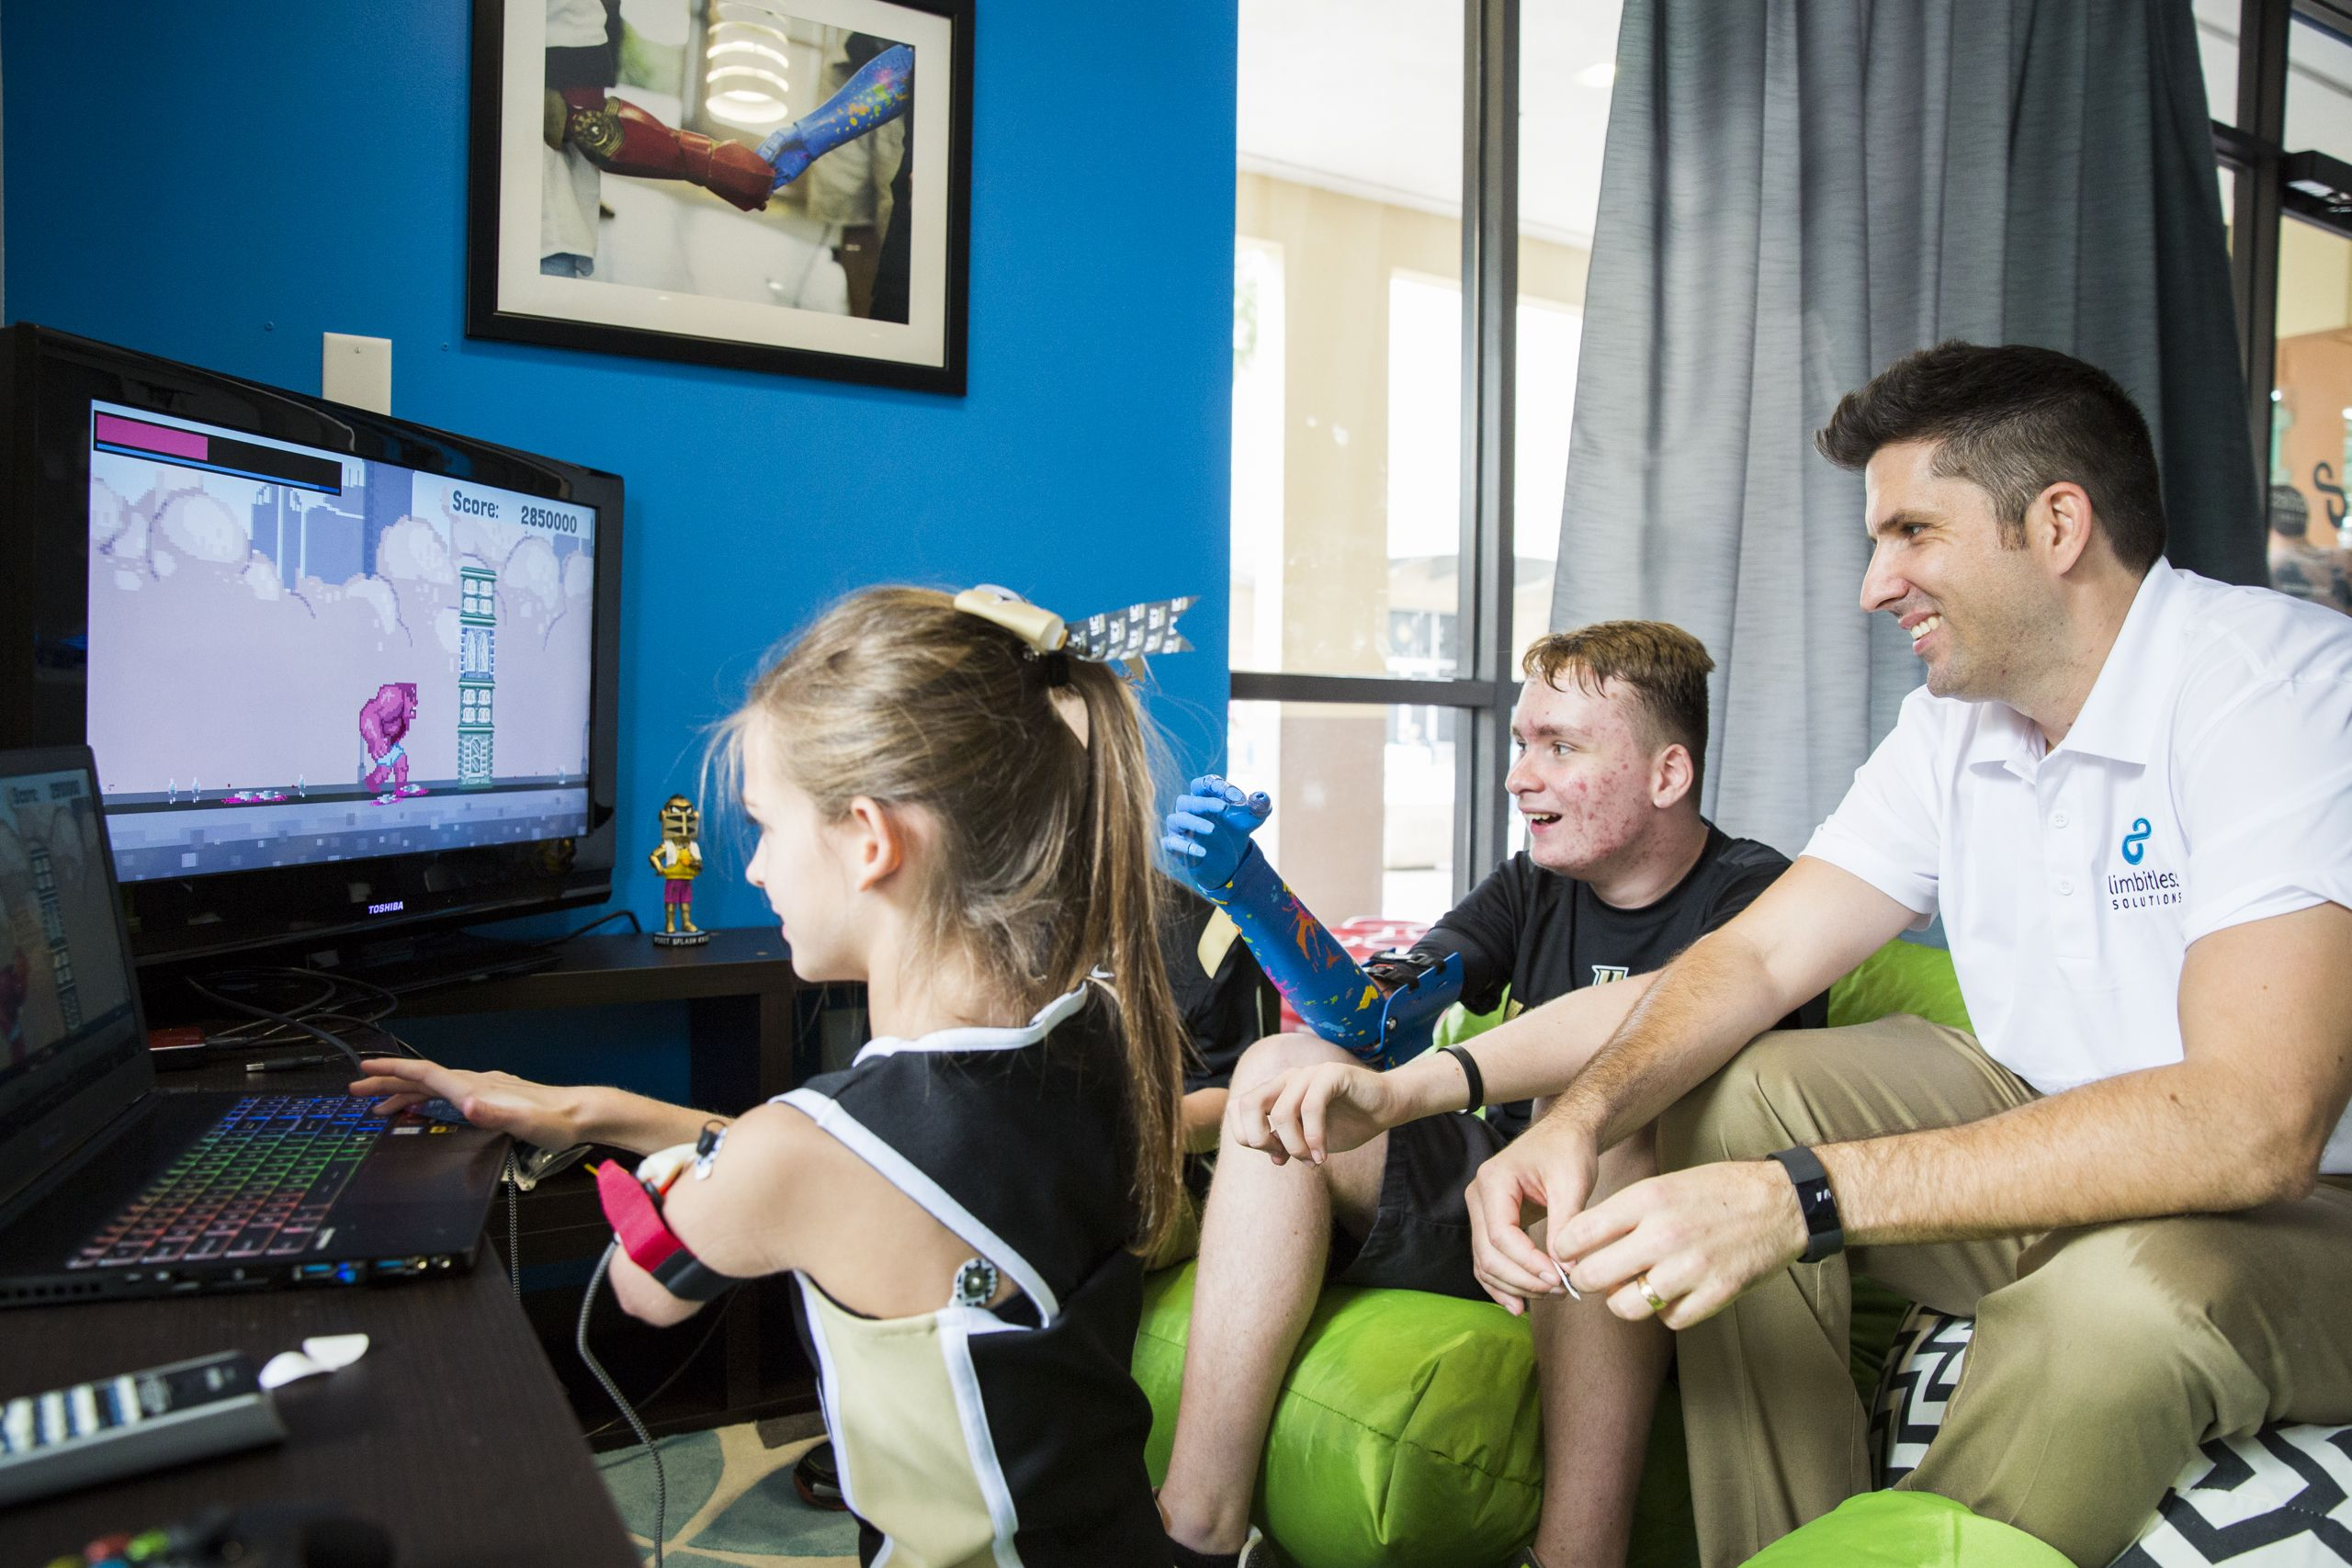 In addition to bionic arms, Limbitless Solutions also